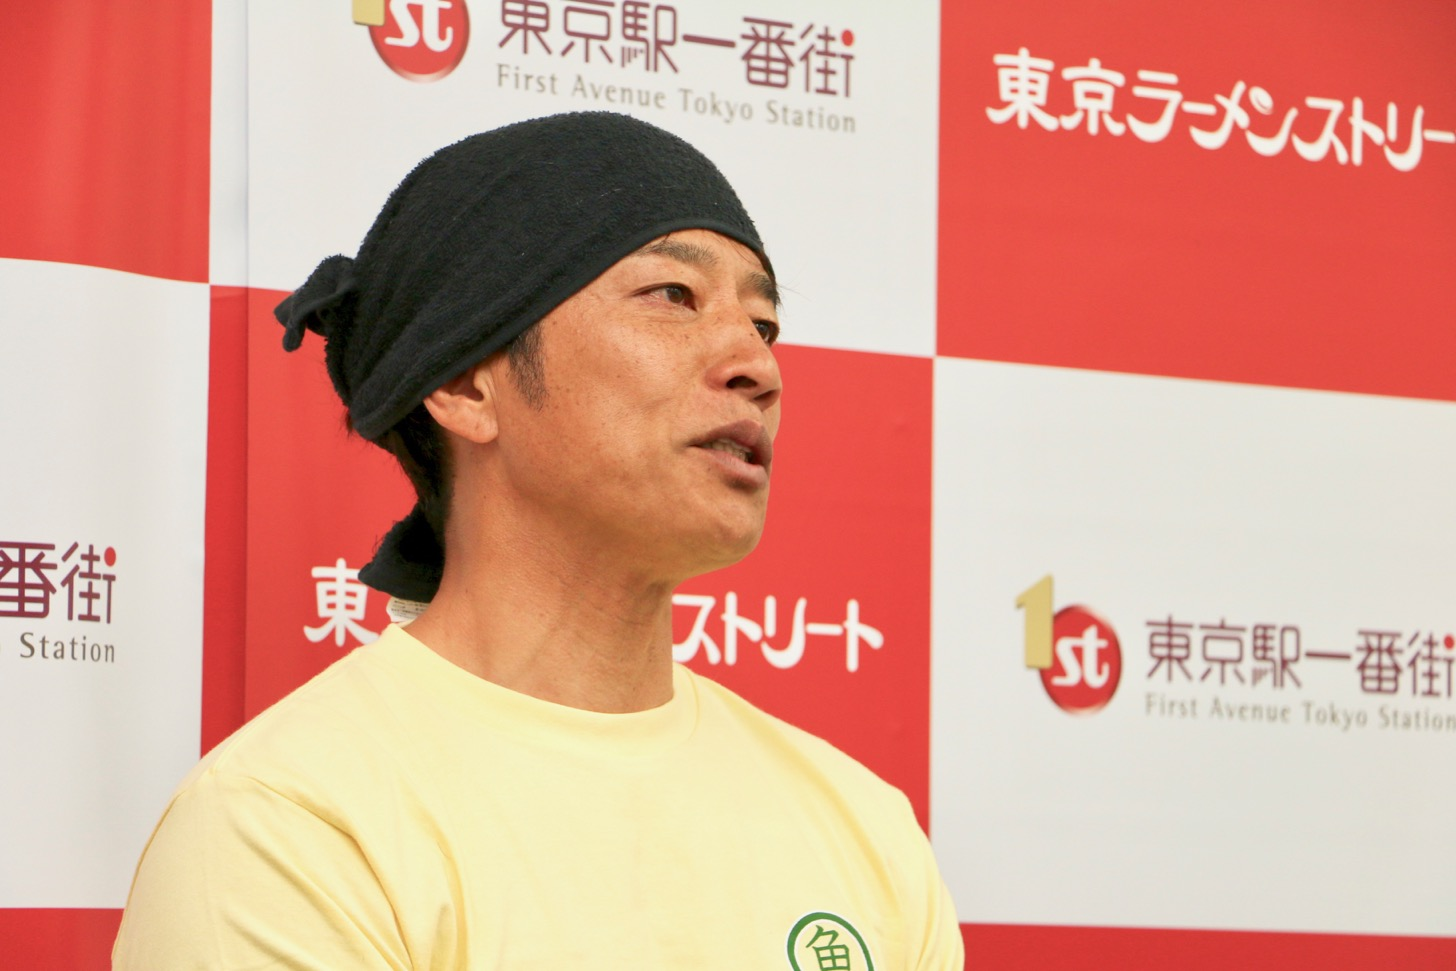 Setagaya Co., Ltd. Representative Director Tsukasa Maejima